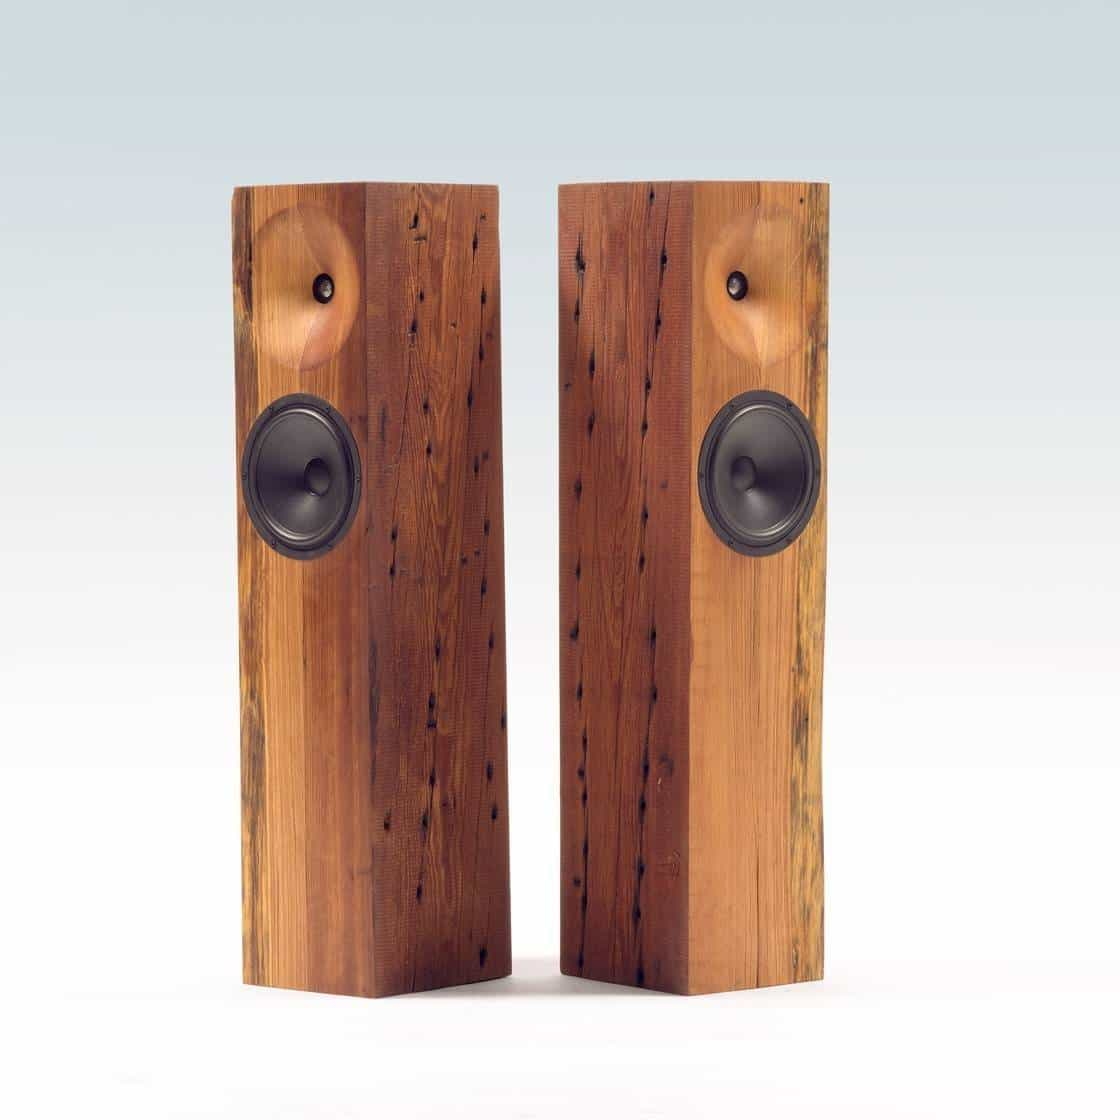 Fern & Roby beam speakers 8